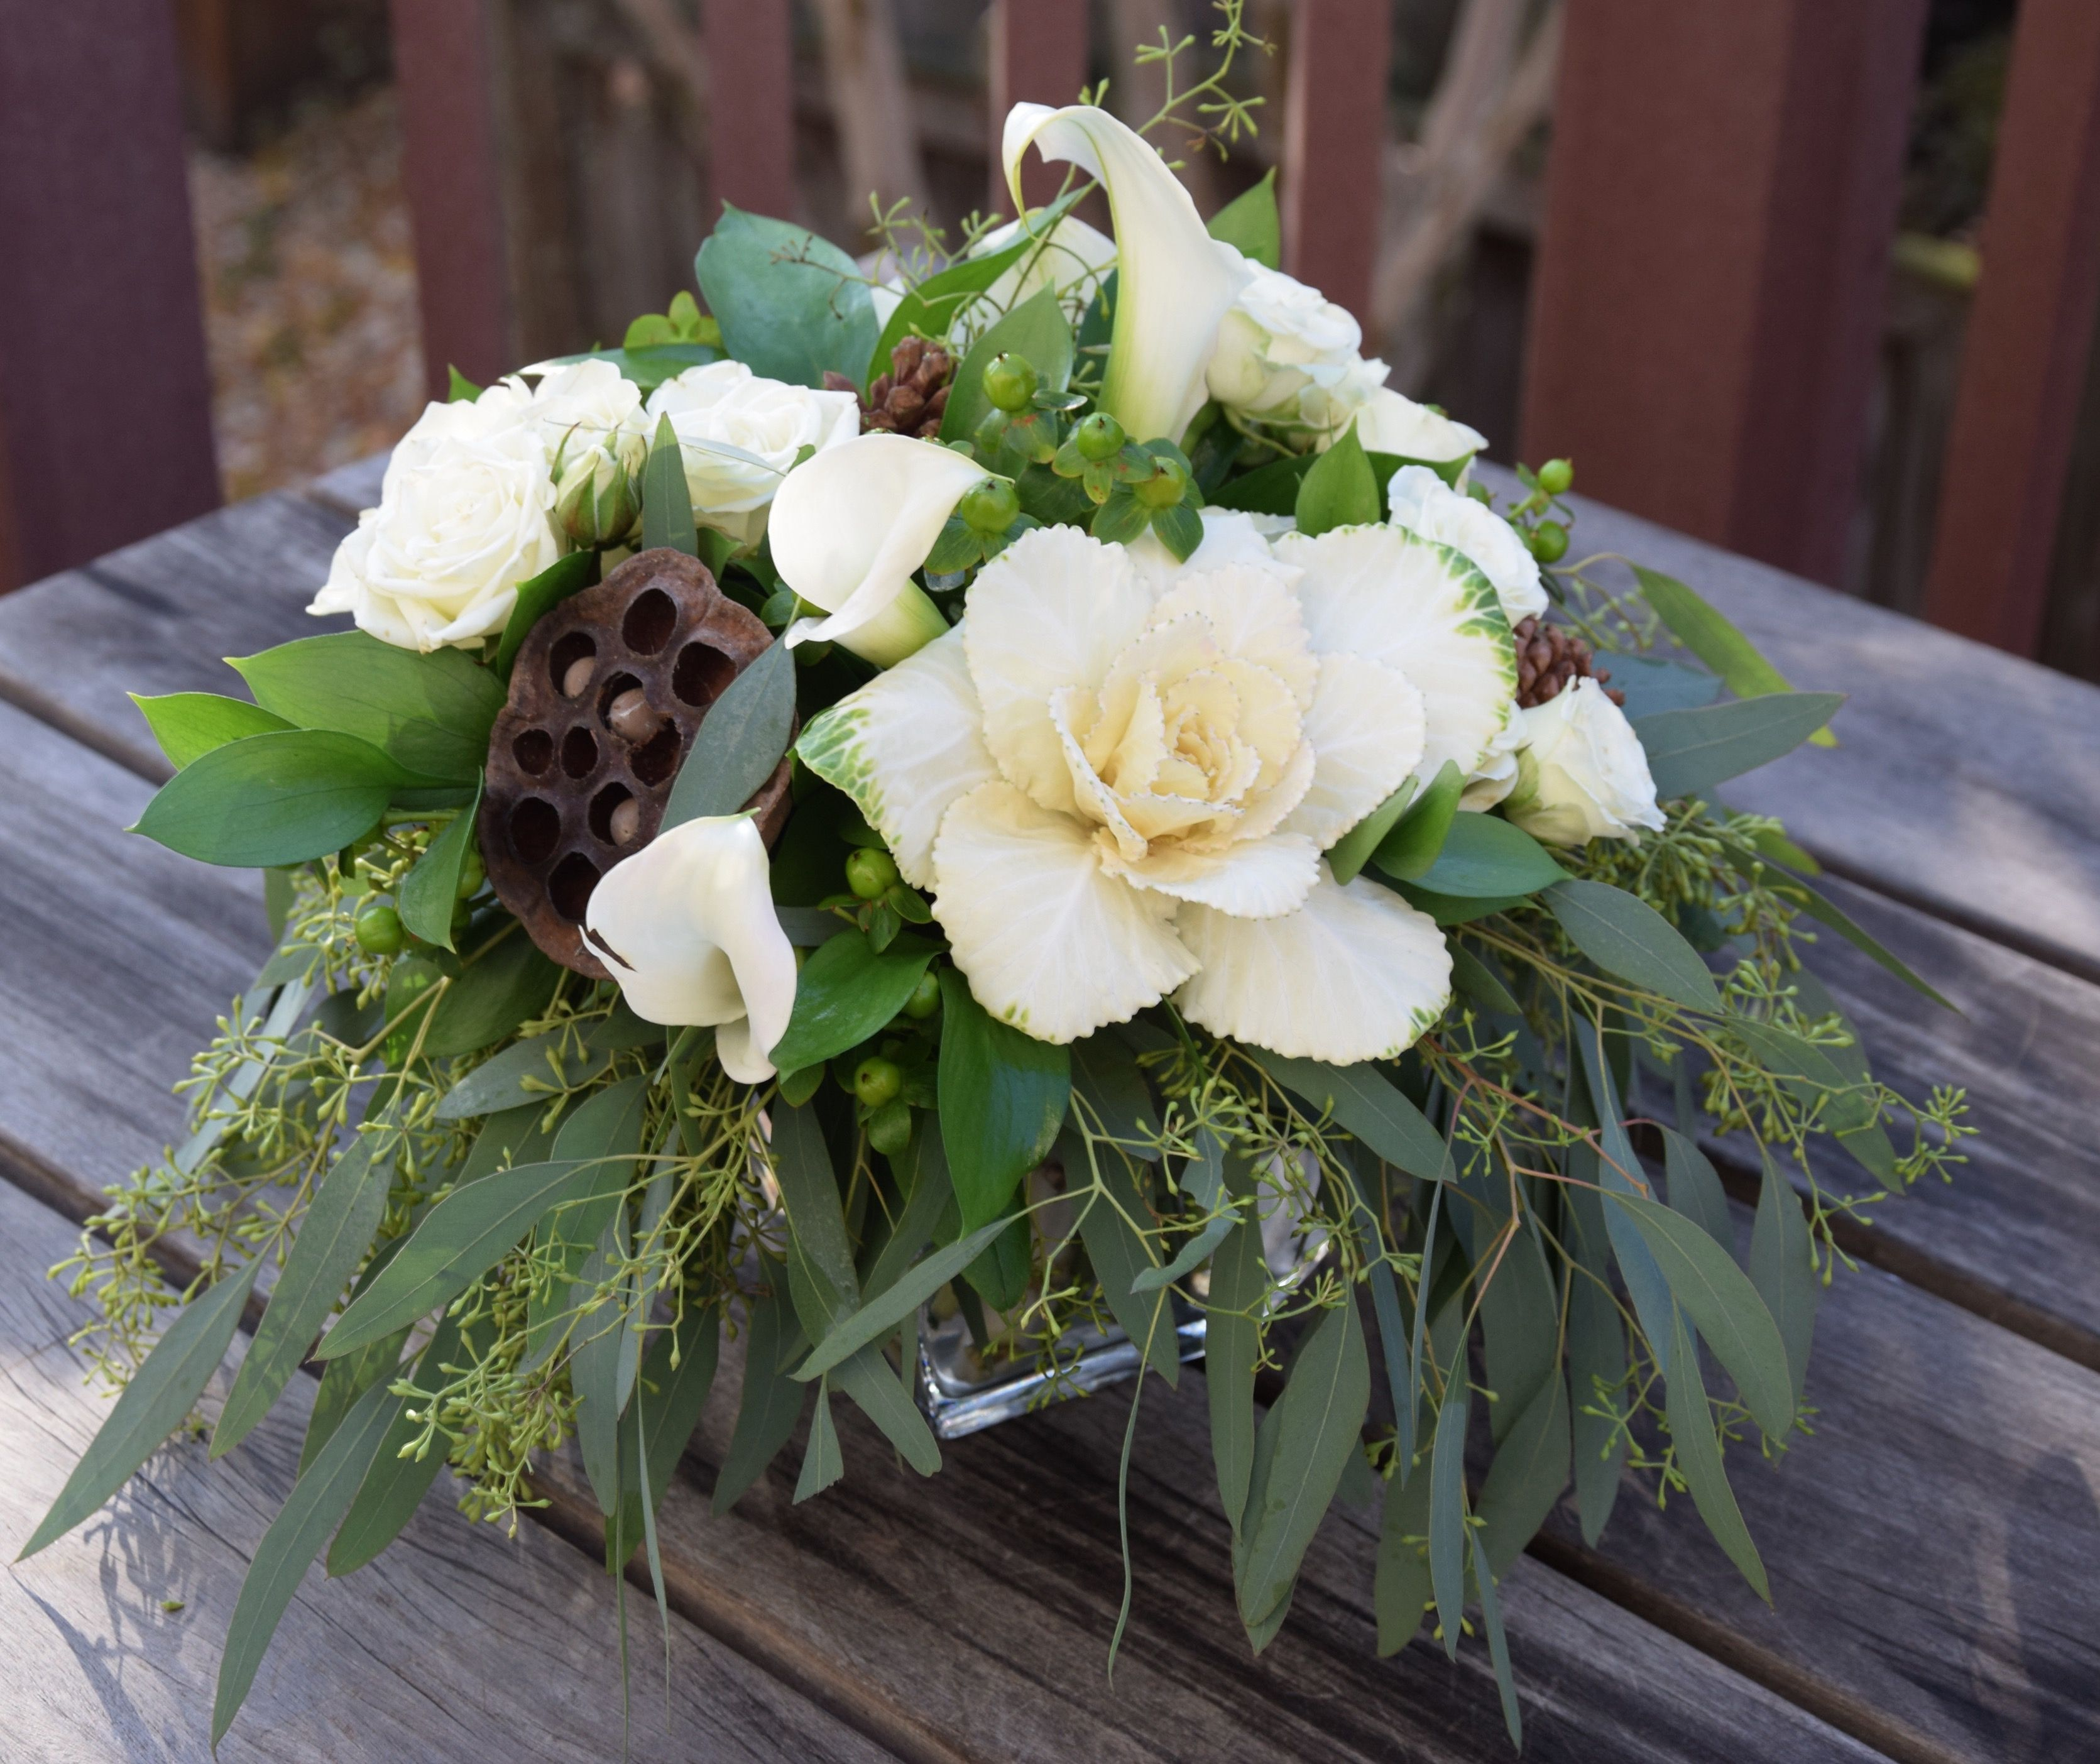 Flower Arrangement With White And Green Fresh Flowers Pine Cones